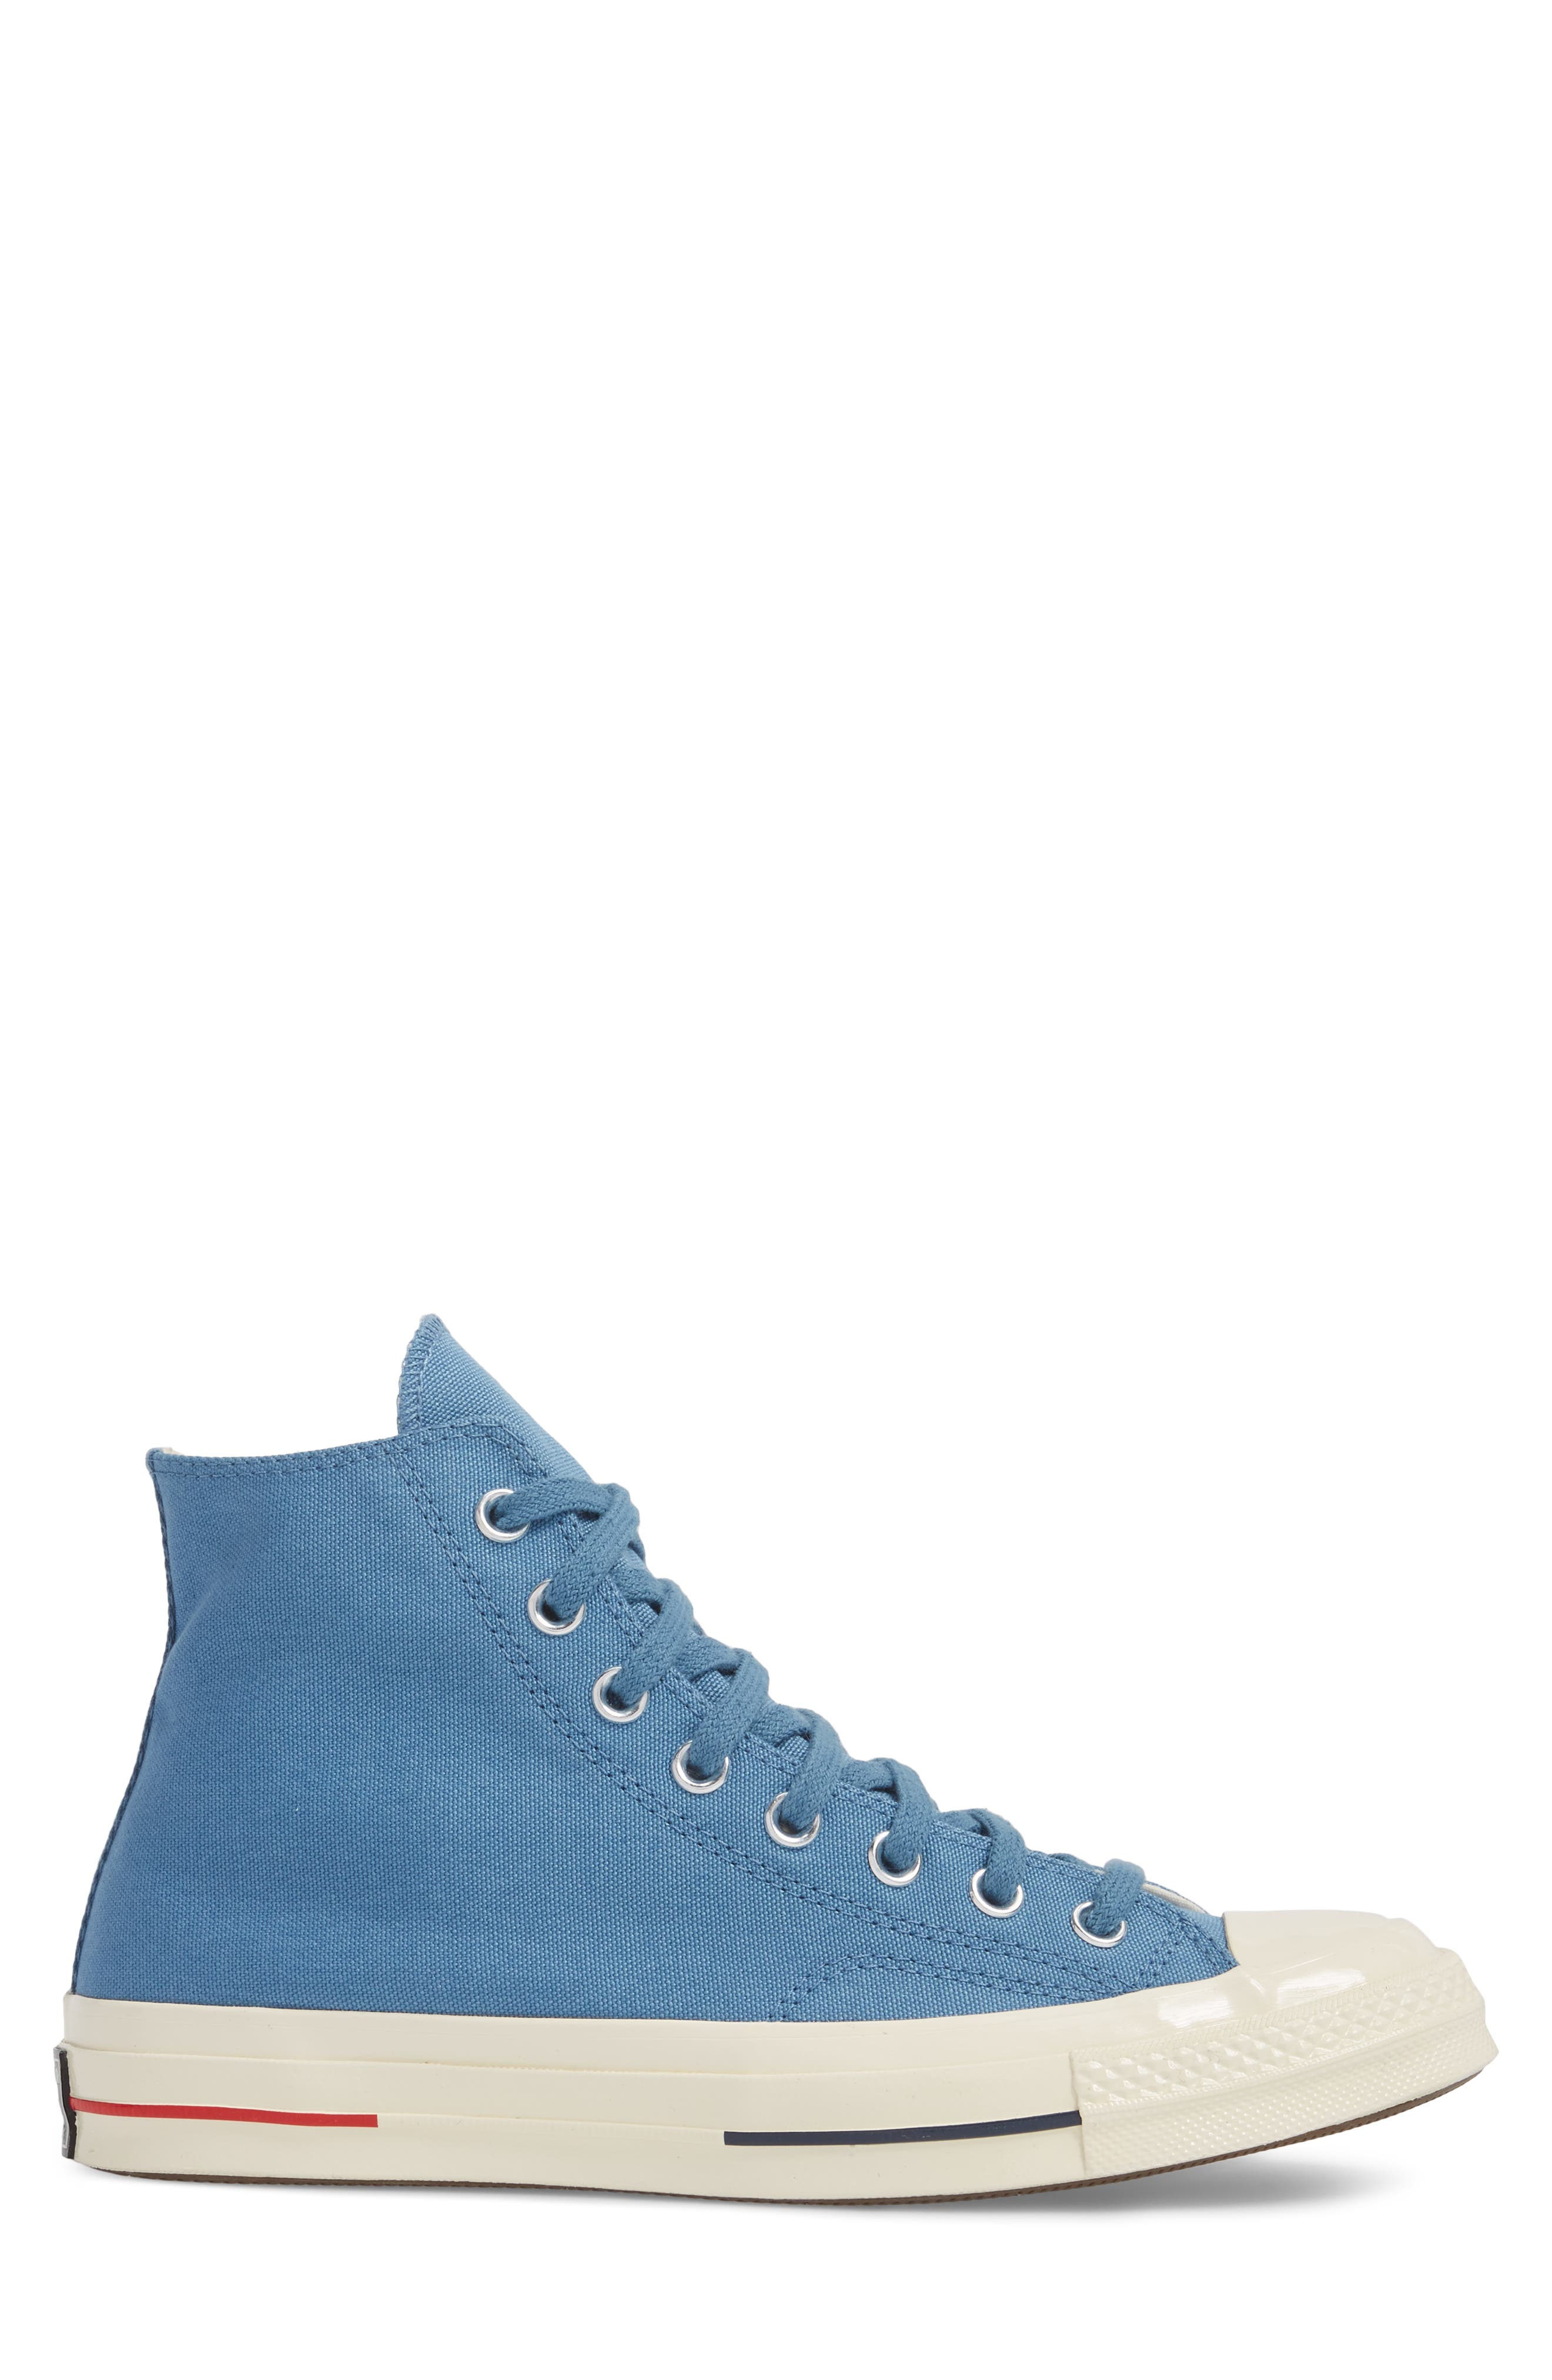 Chuck Taylor<sup>®</sup> All Star<sup>®</sup> '70s Heritage High Top Sneaker,                             Alternate thumbnail 3, color,                             Aegean Storm